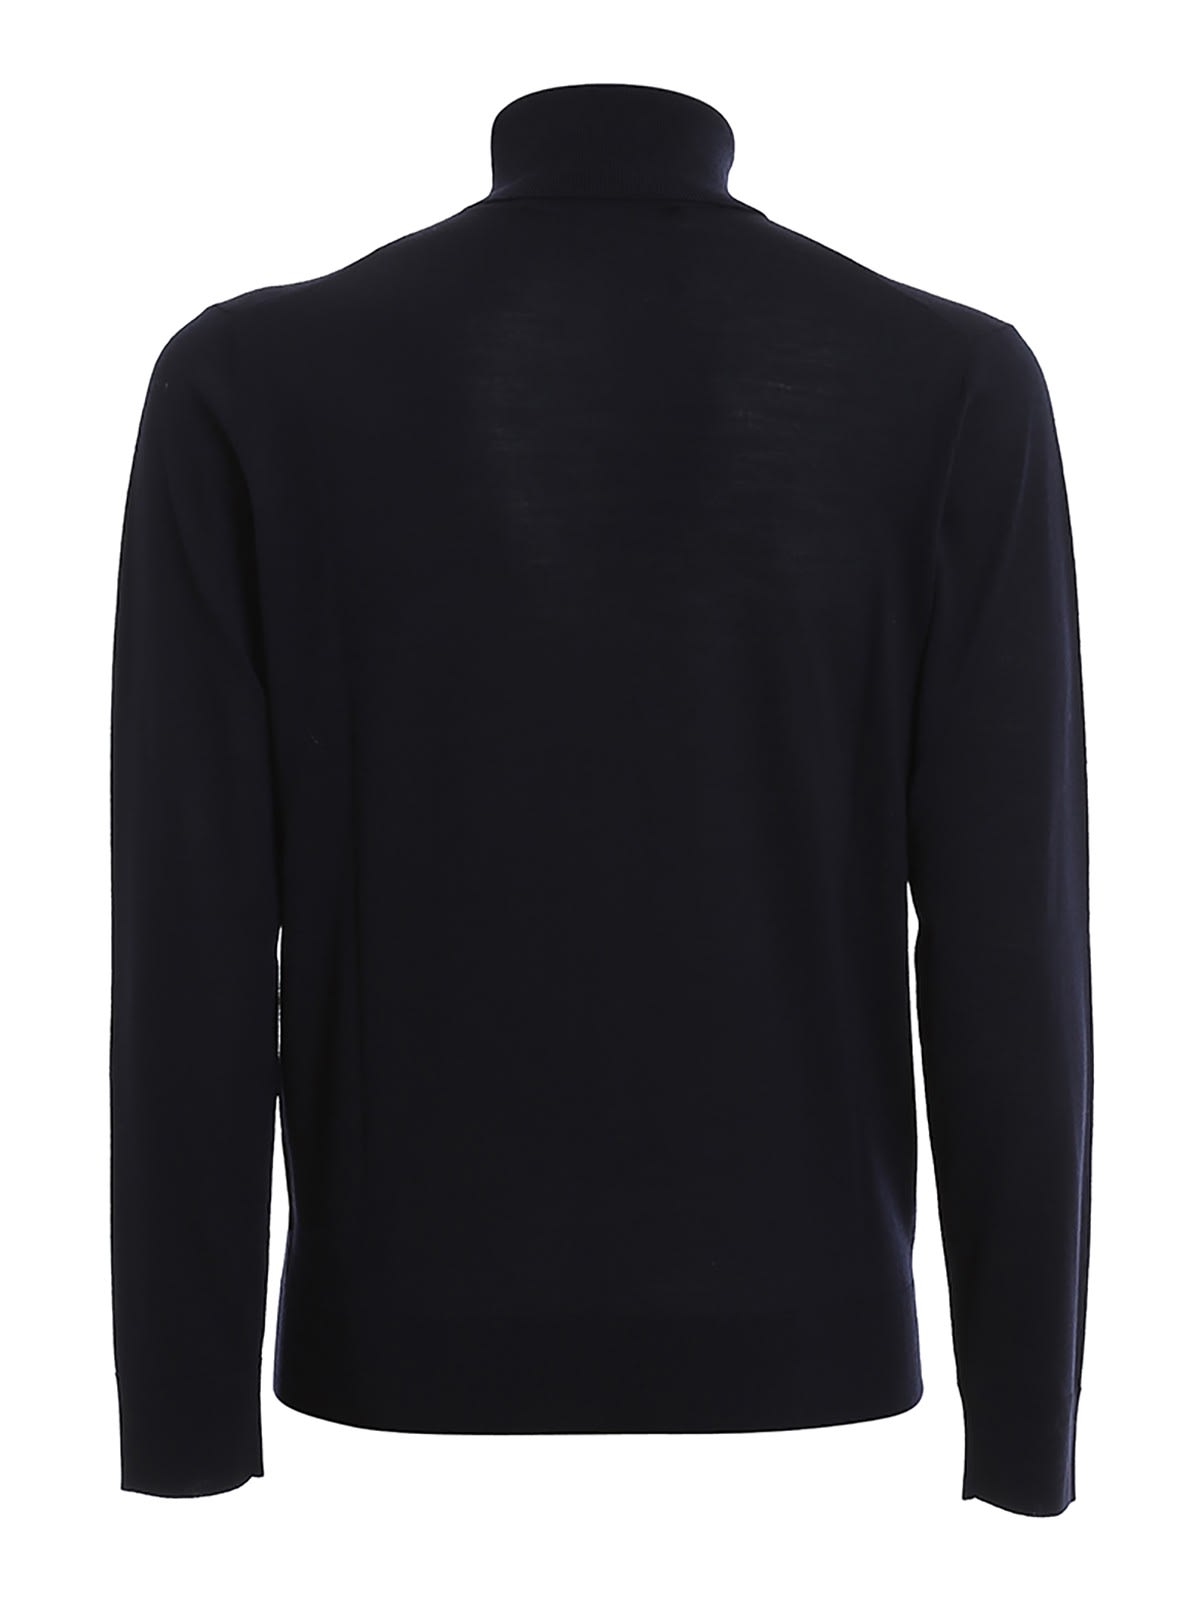 Fashion Style Dsquared2 Turtle Neck Wool Sweater - Top Quality